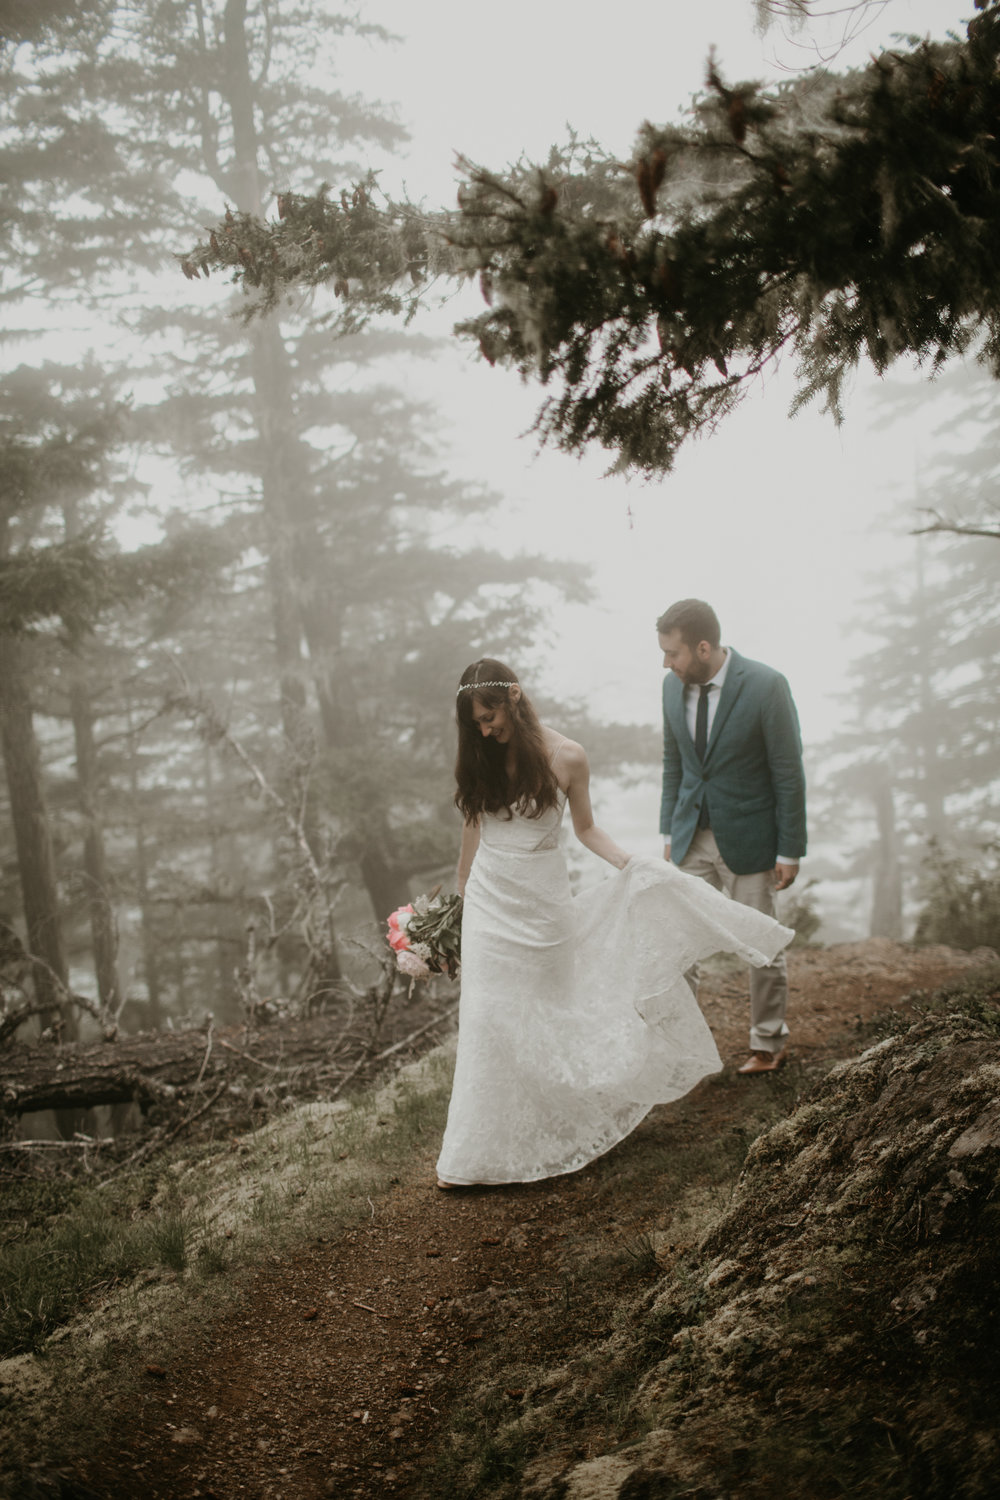 PNW-elopement-wedding-engagement-olympic national park-port angeles-hurricane ridge-lake crescent-kayla dawn photography- photographer-photography-kayladawnphoto-150.jpg